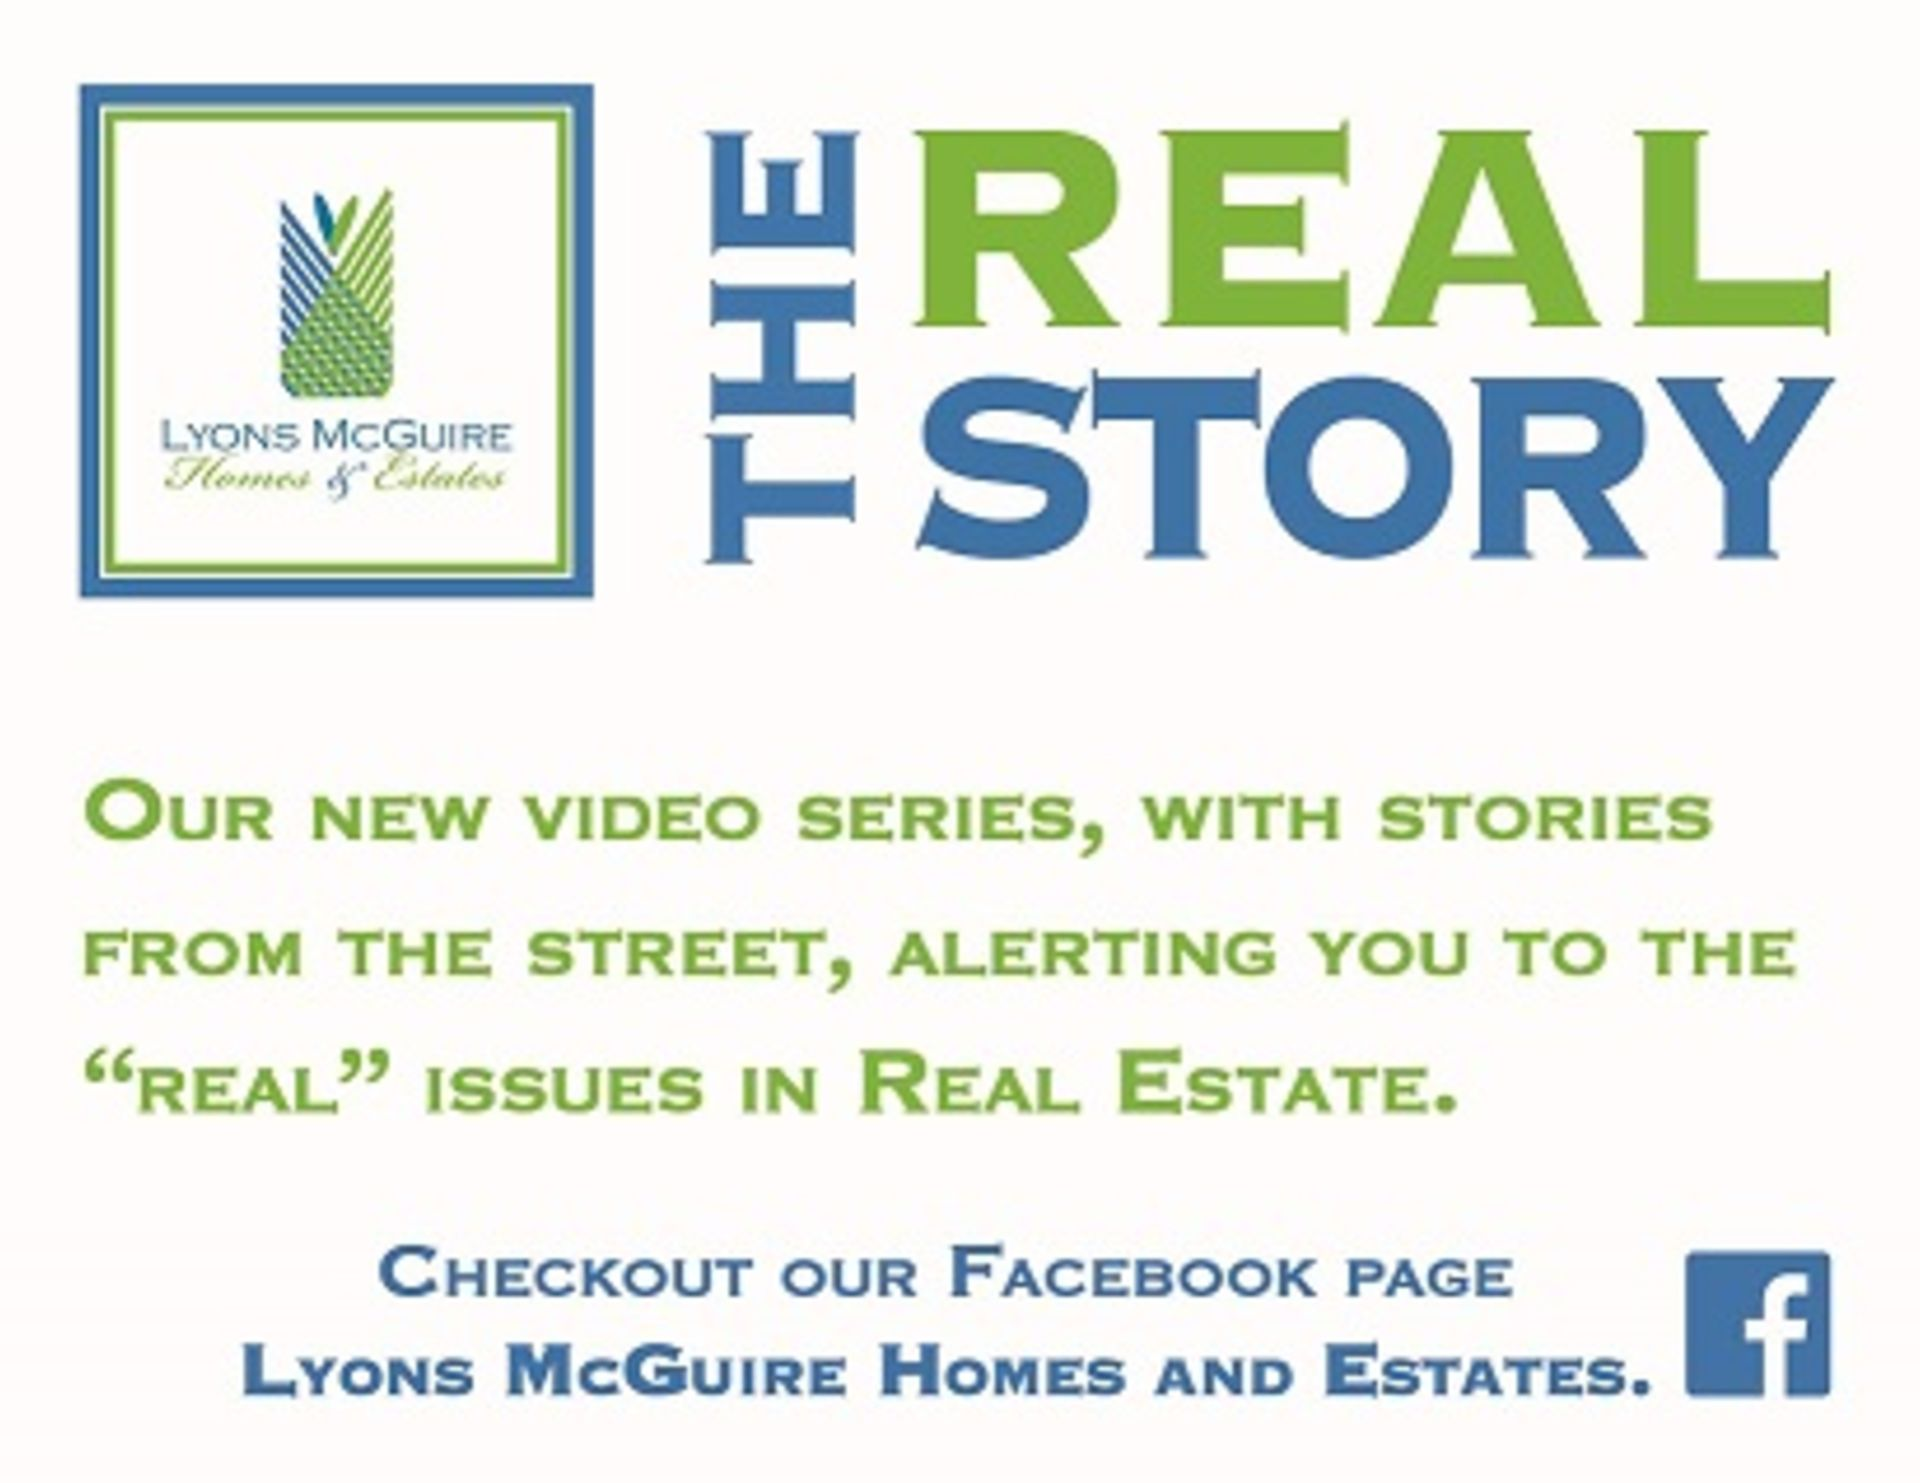 The REAL Story episode #4 Clutter…What Clutter?